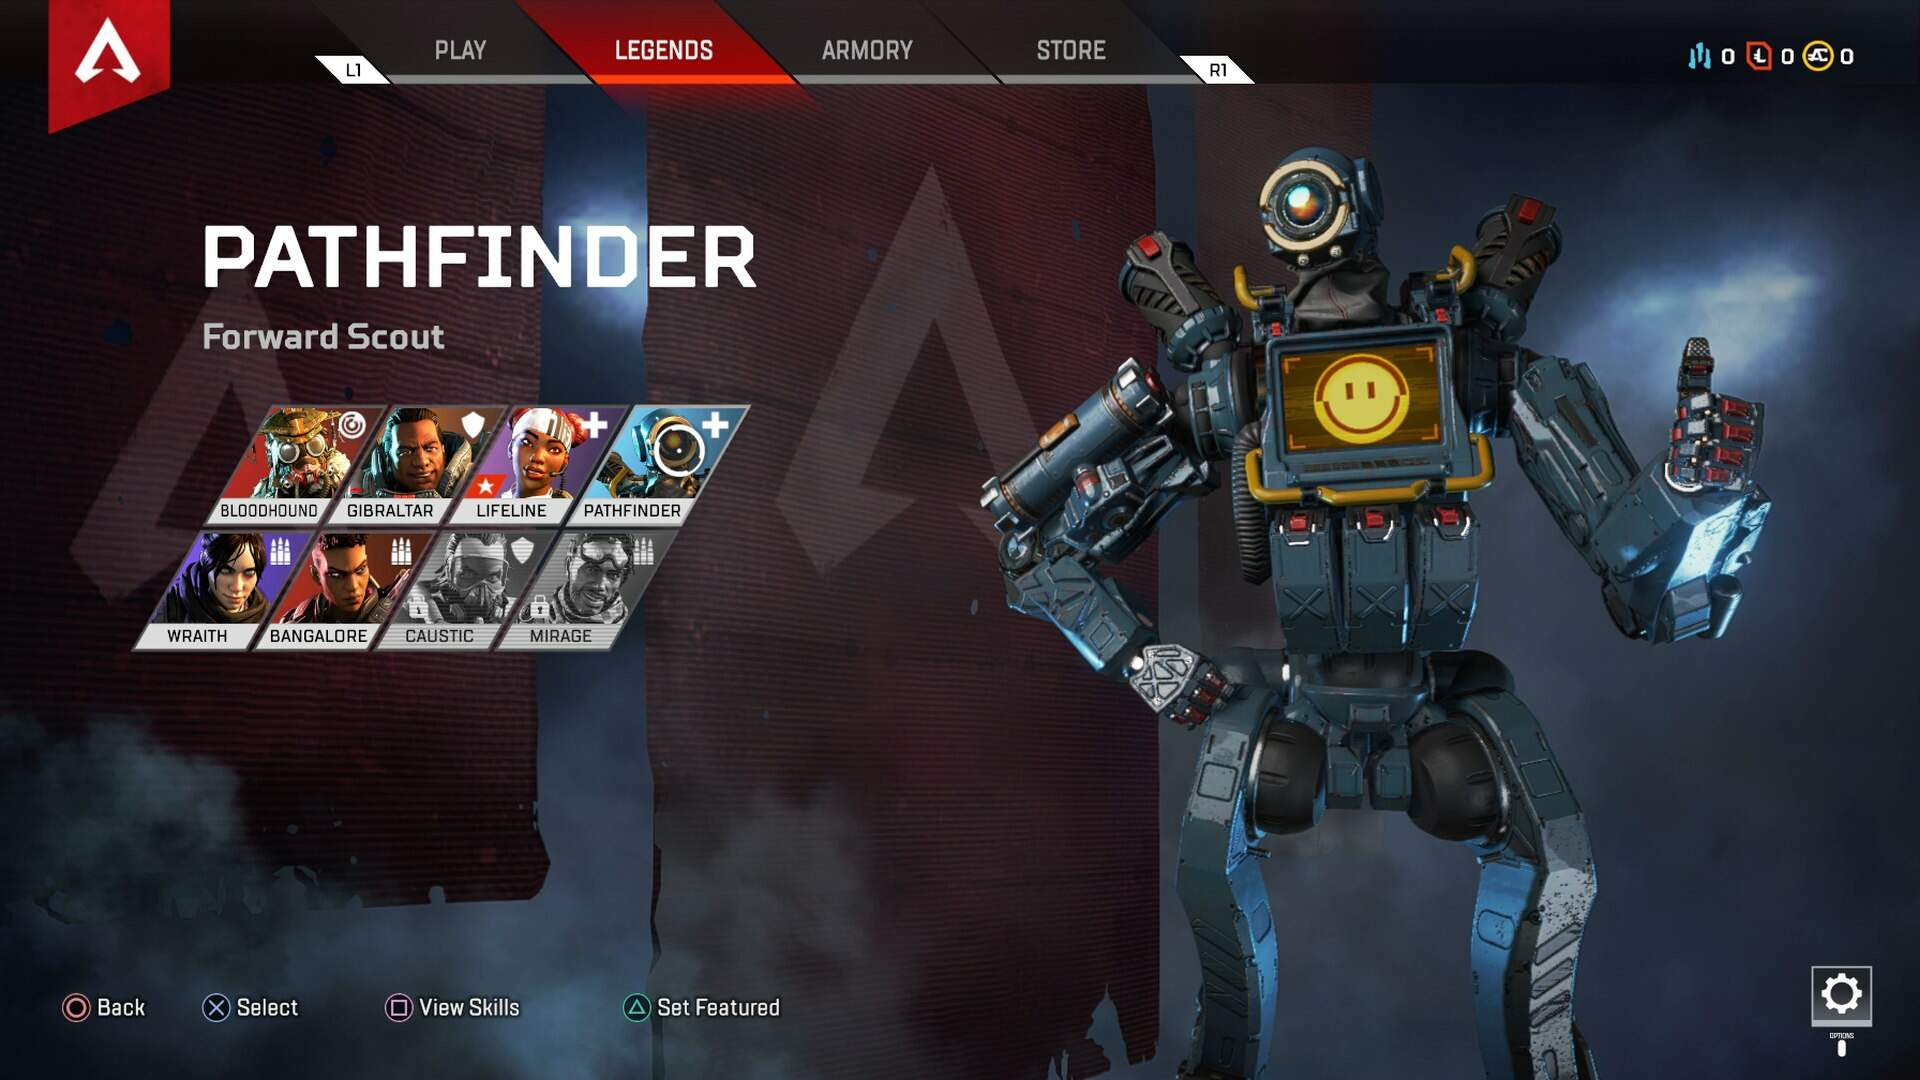 Apex Legends Pathfinder - Lore, Tips, Abilities, Legendary Skins, How to Win With Pathfinder